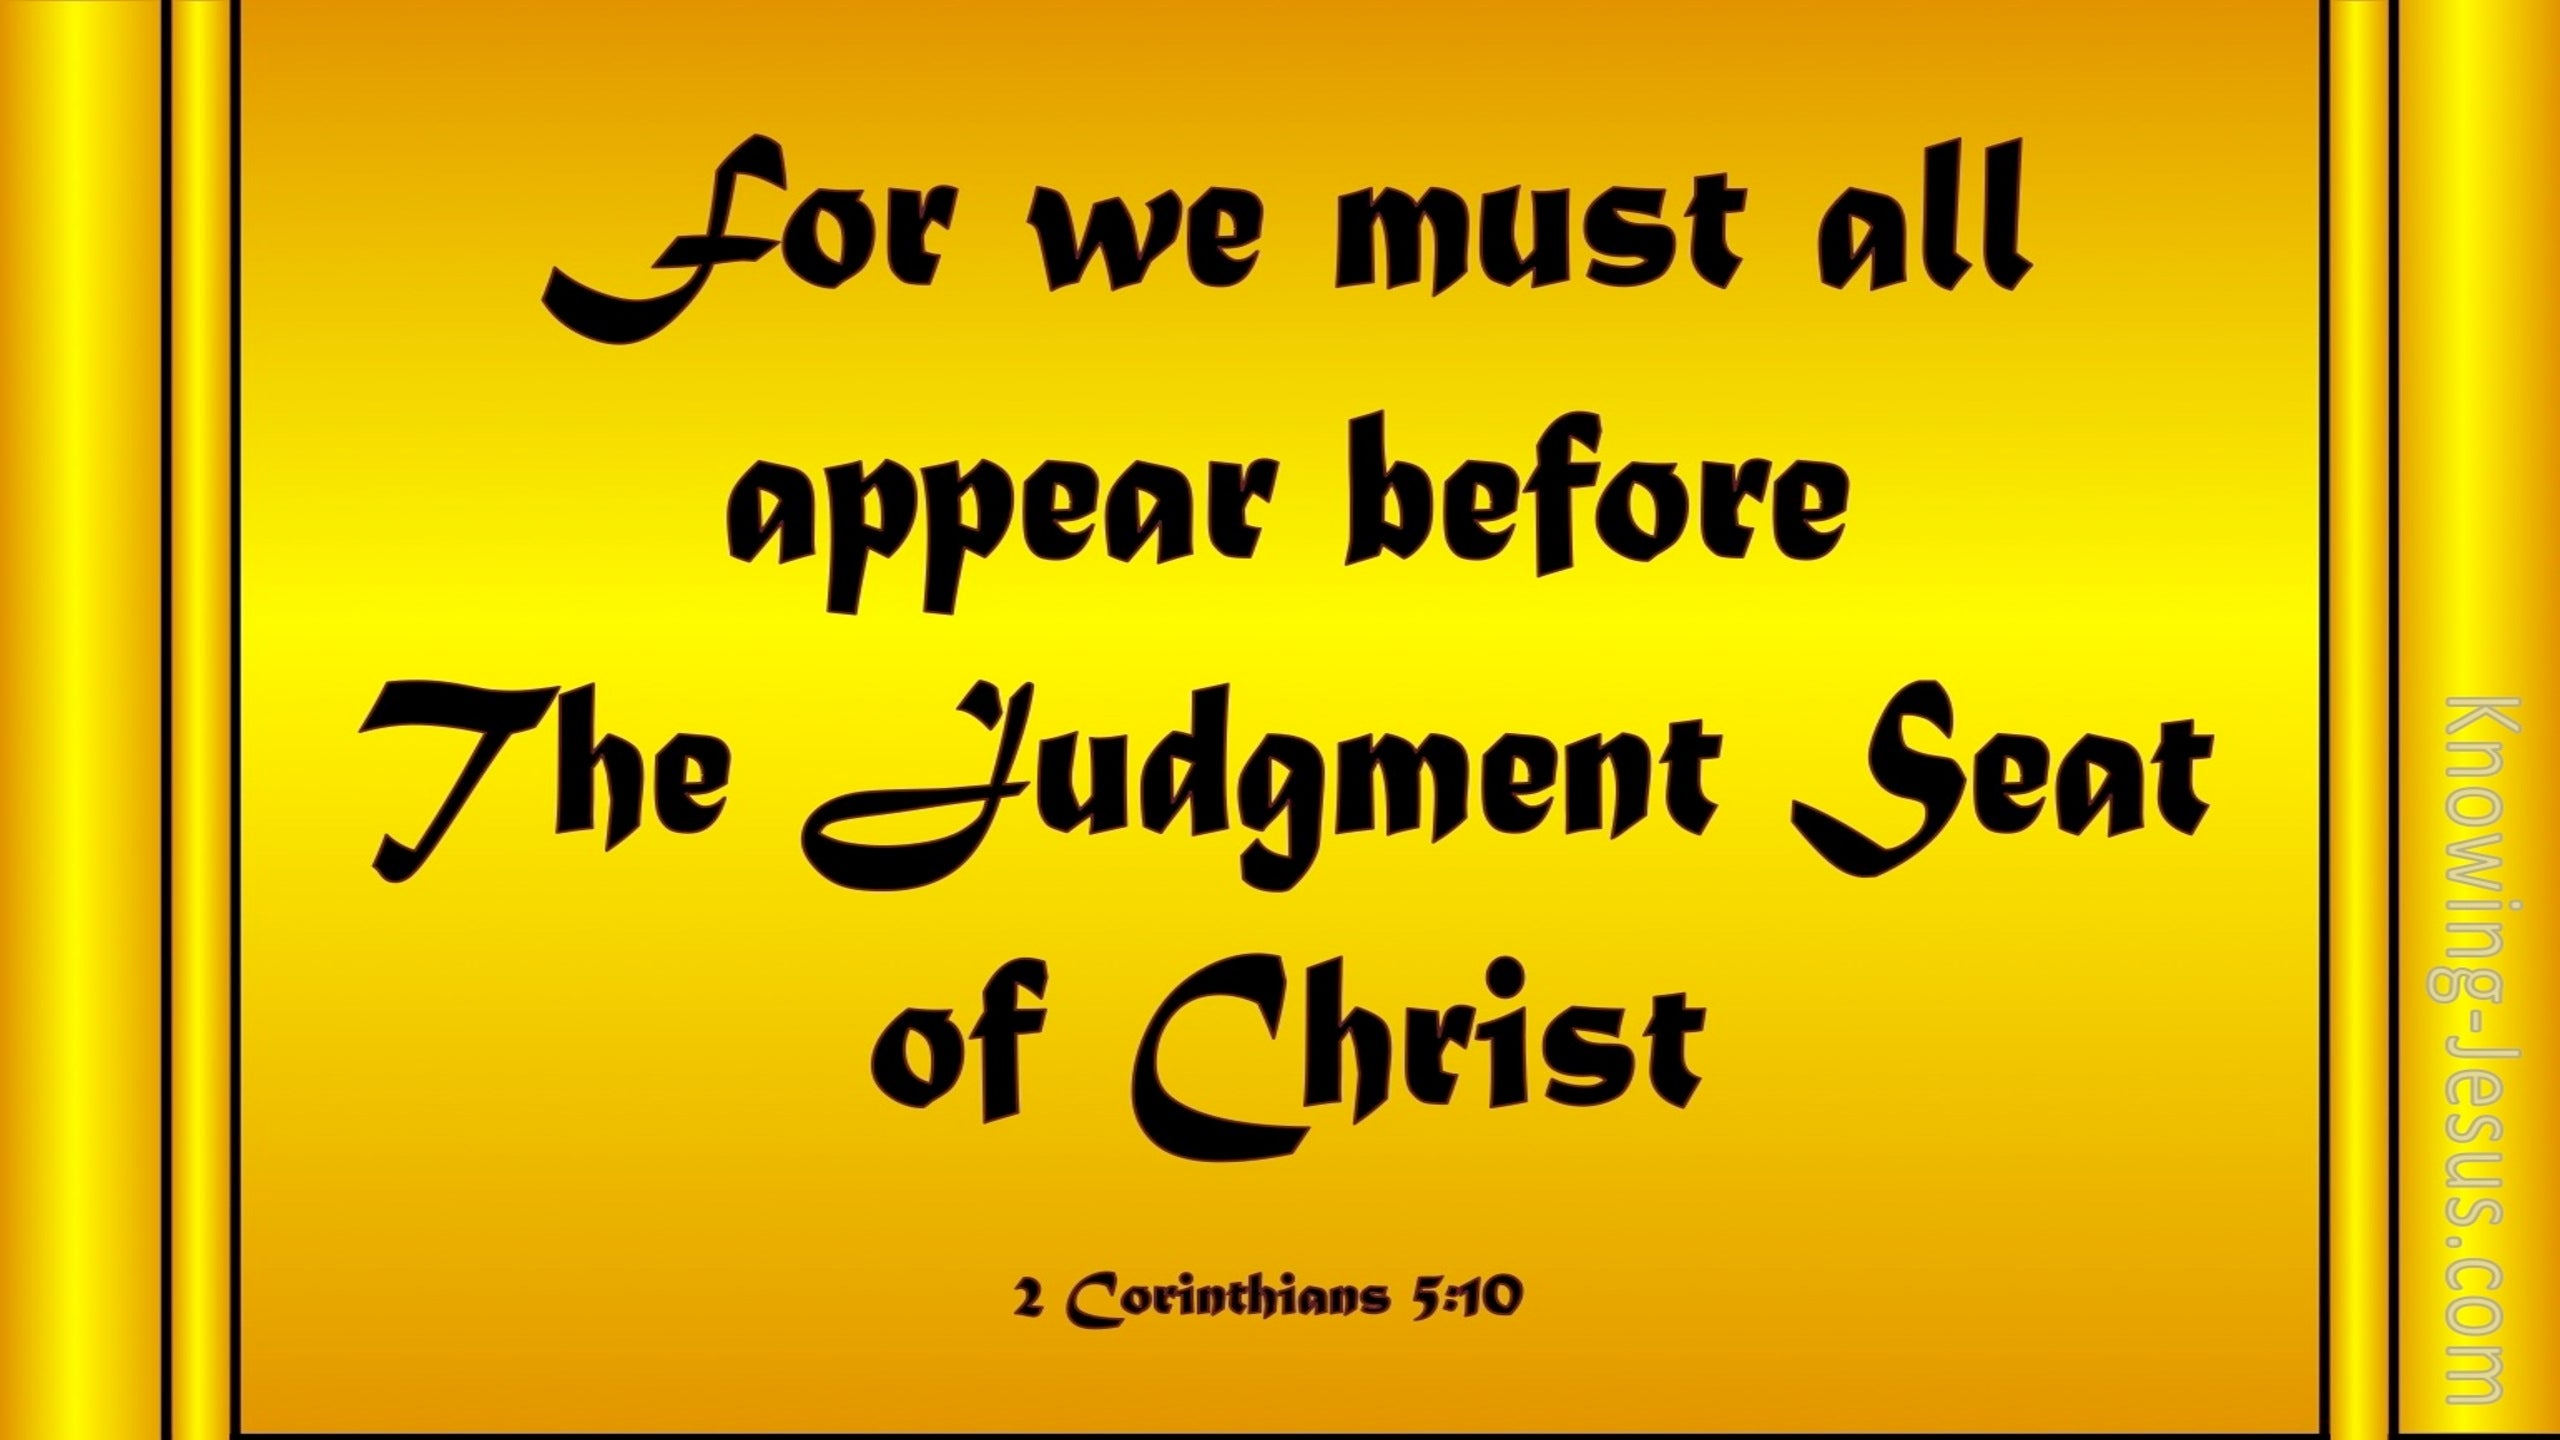 2 Corinthians 5:10 Judgement Seat Of Christ (yellow)